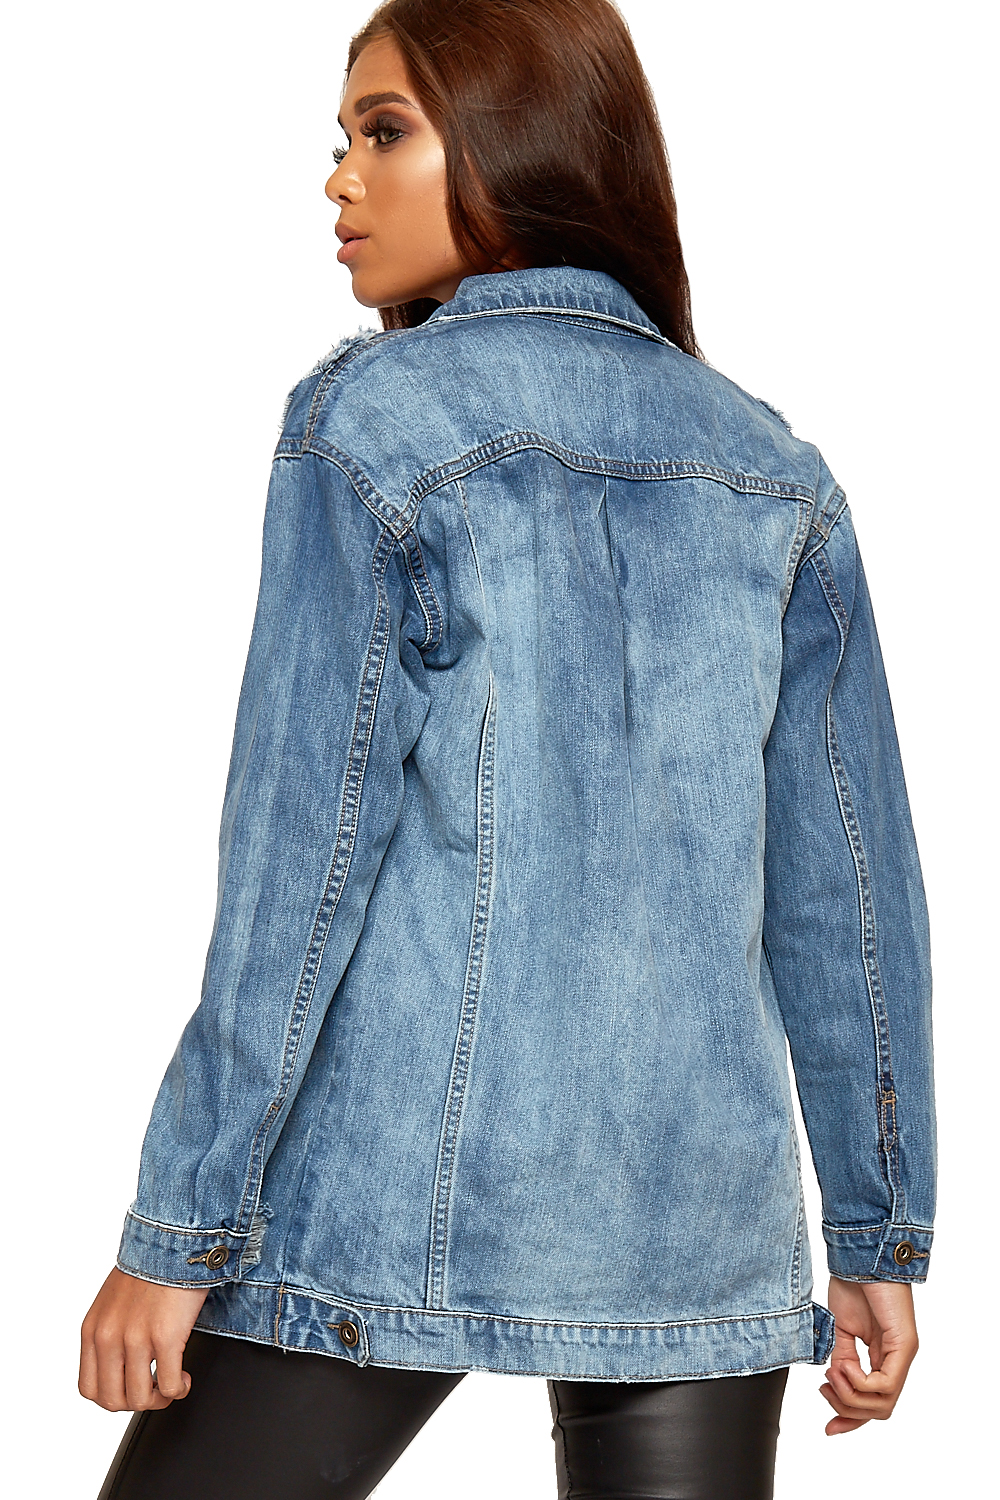 Shop the latest range of denim jackets at ASOS. Discover the newest embroidered and boyfriend jackets in classic, distressed and weathered denim styles now!